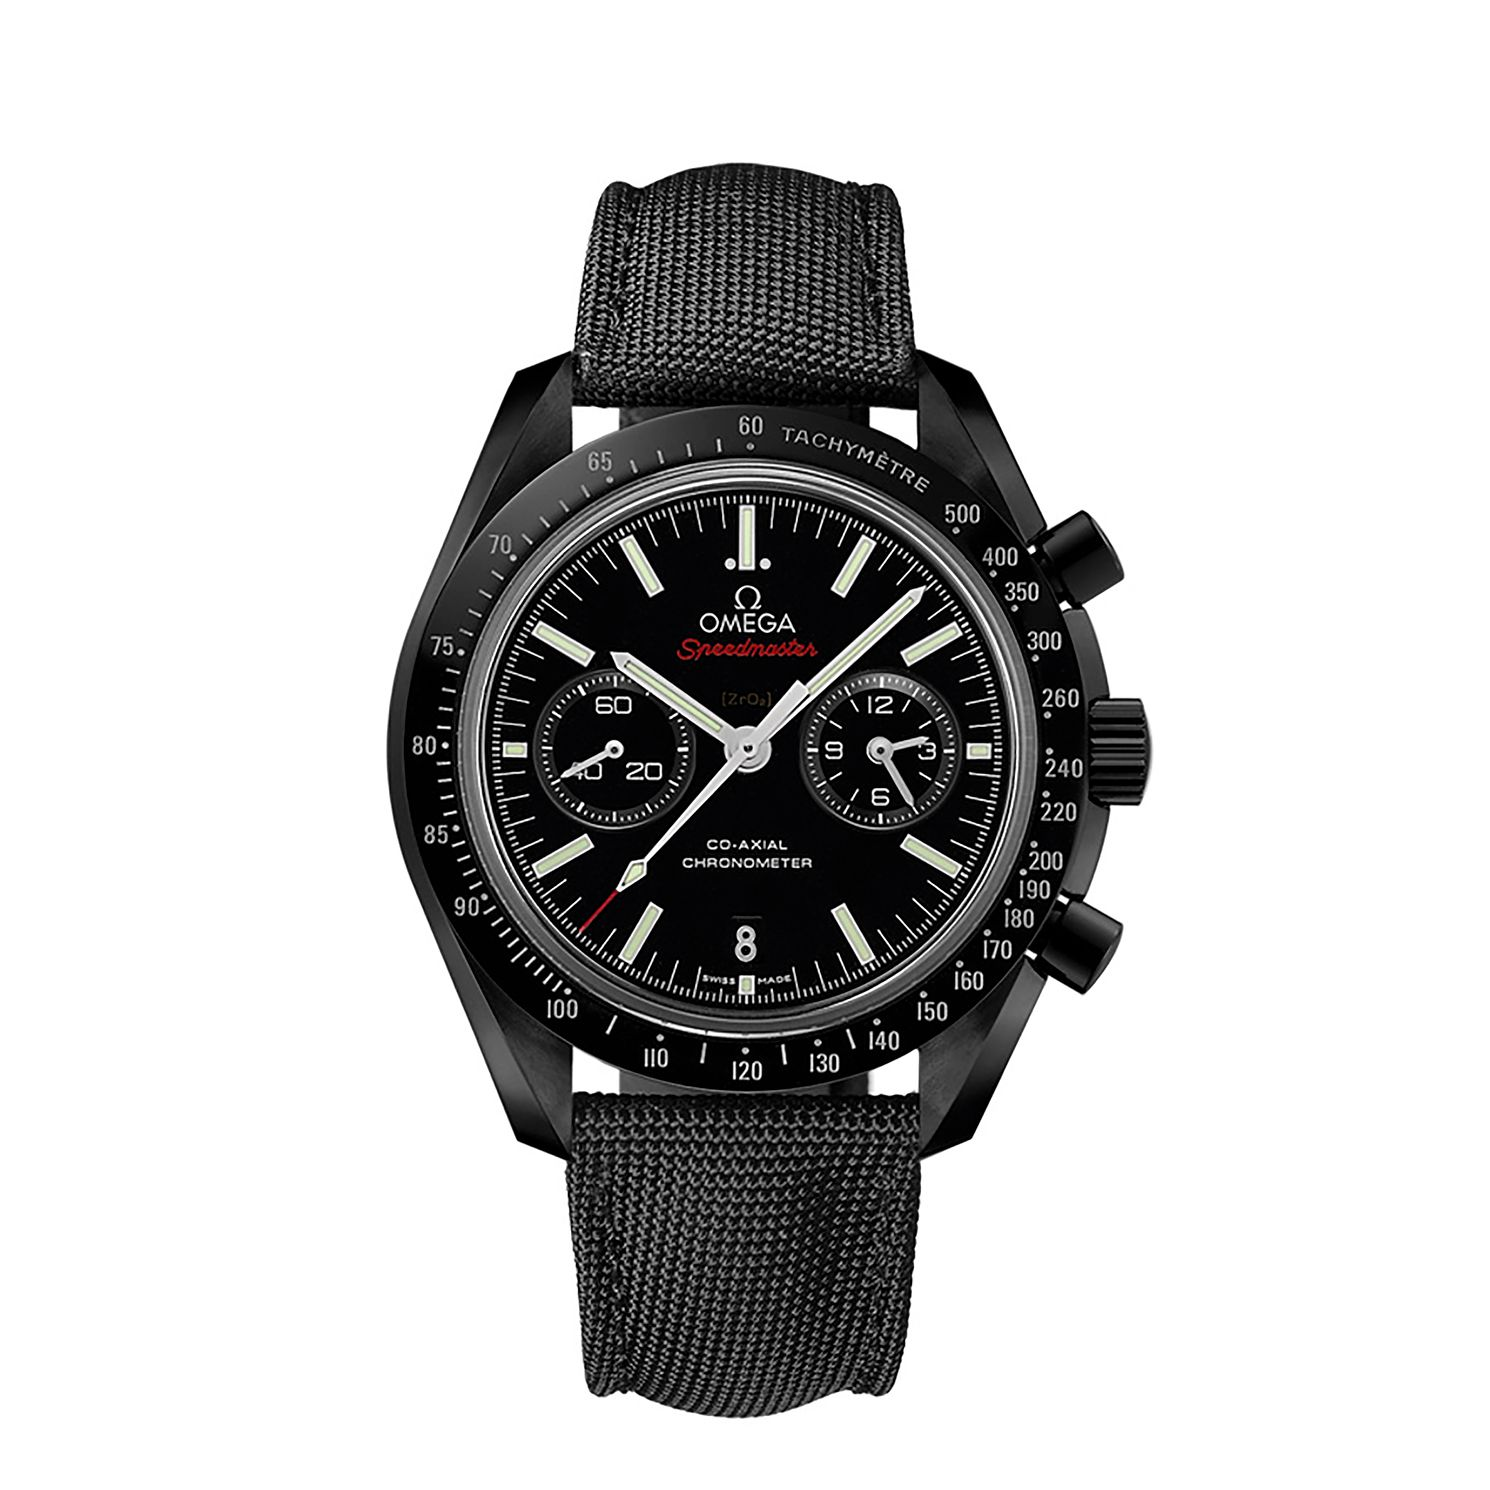 Omega Speedmaster Moonwatch Men's Black Fabric Strap Watch - Product number 1318713